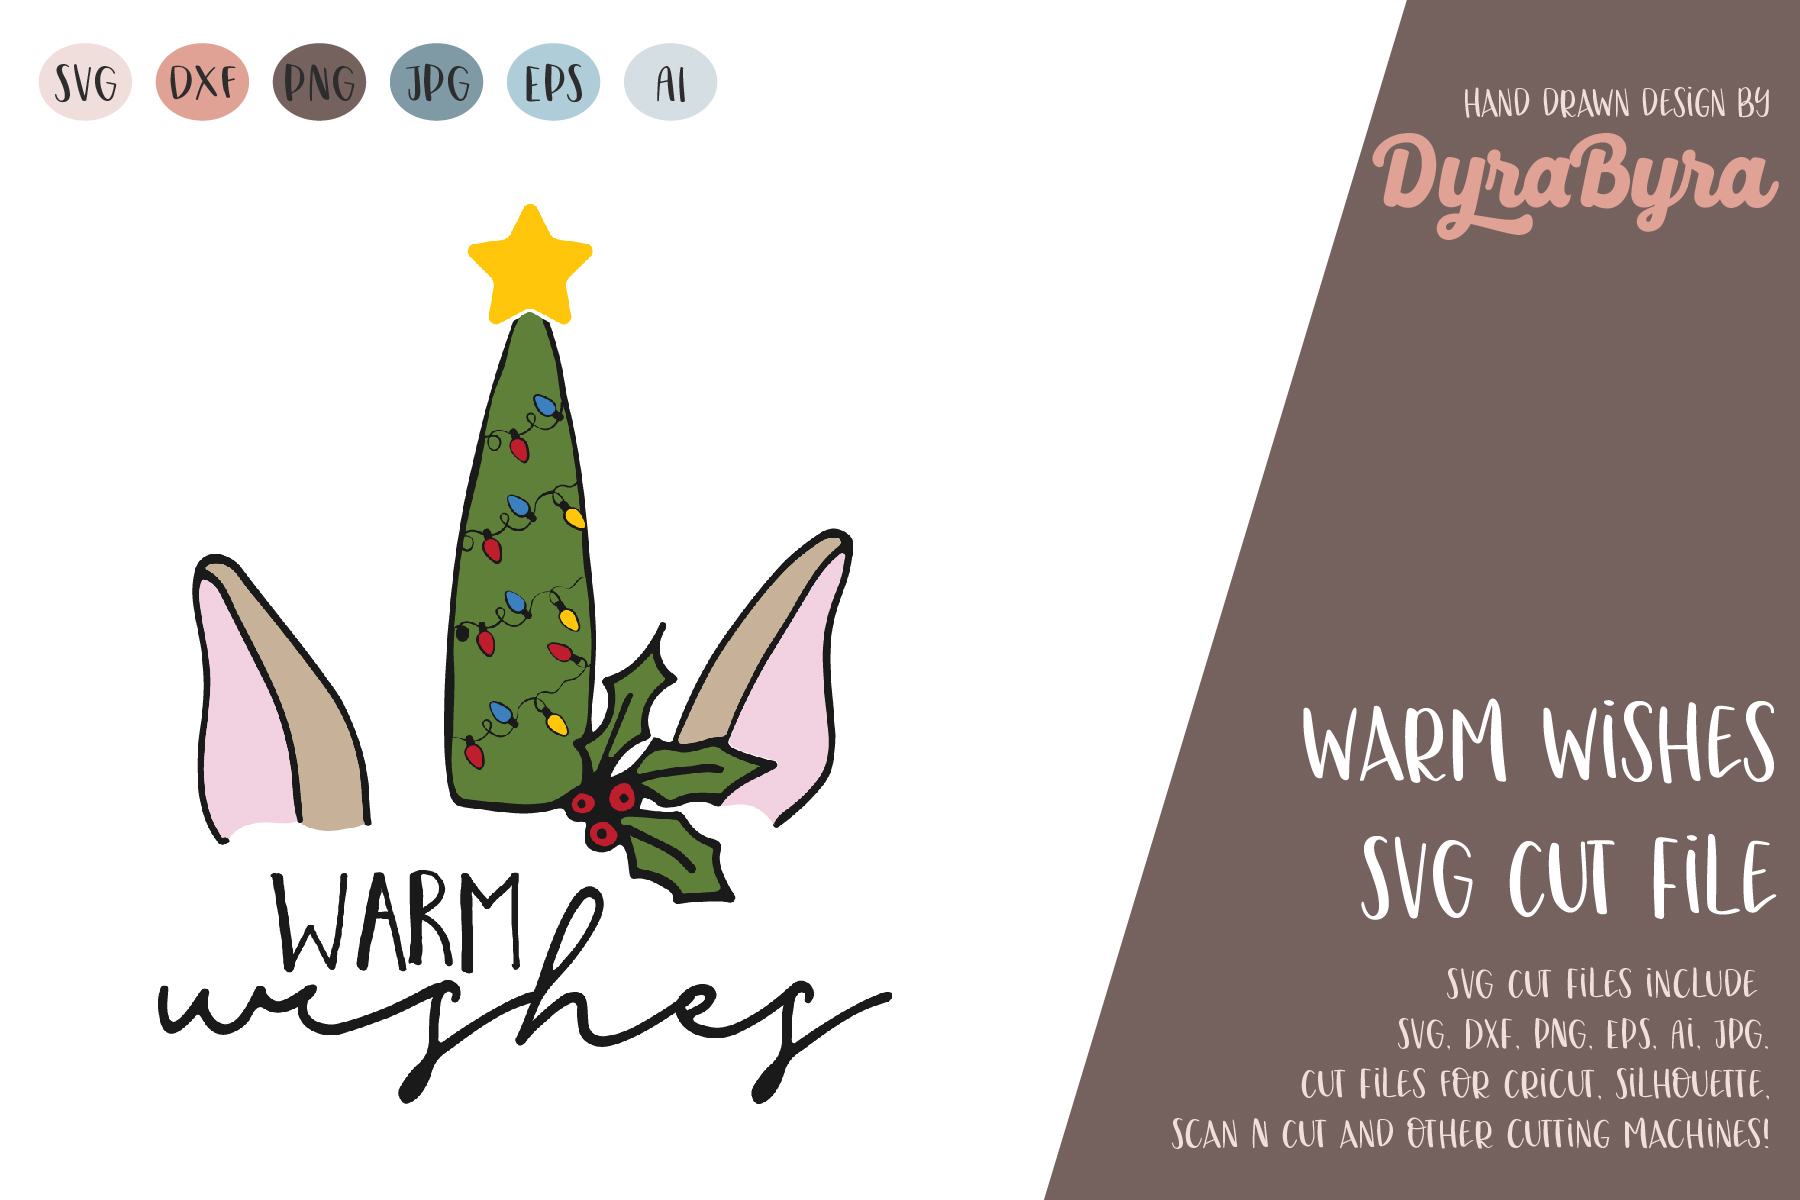 Warm Wishes SVG / Christmas SVG Cut File example image 2